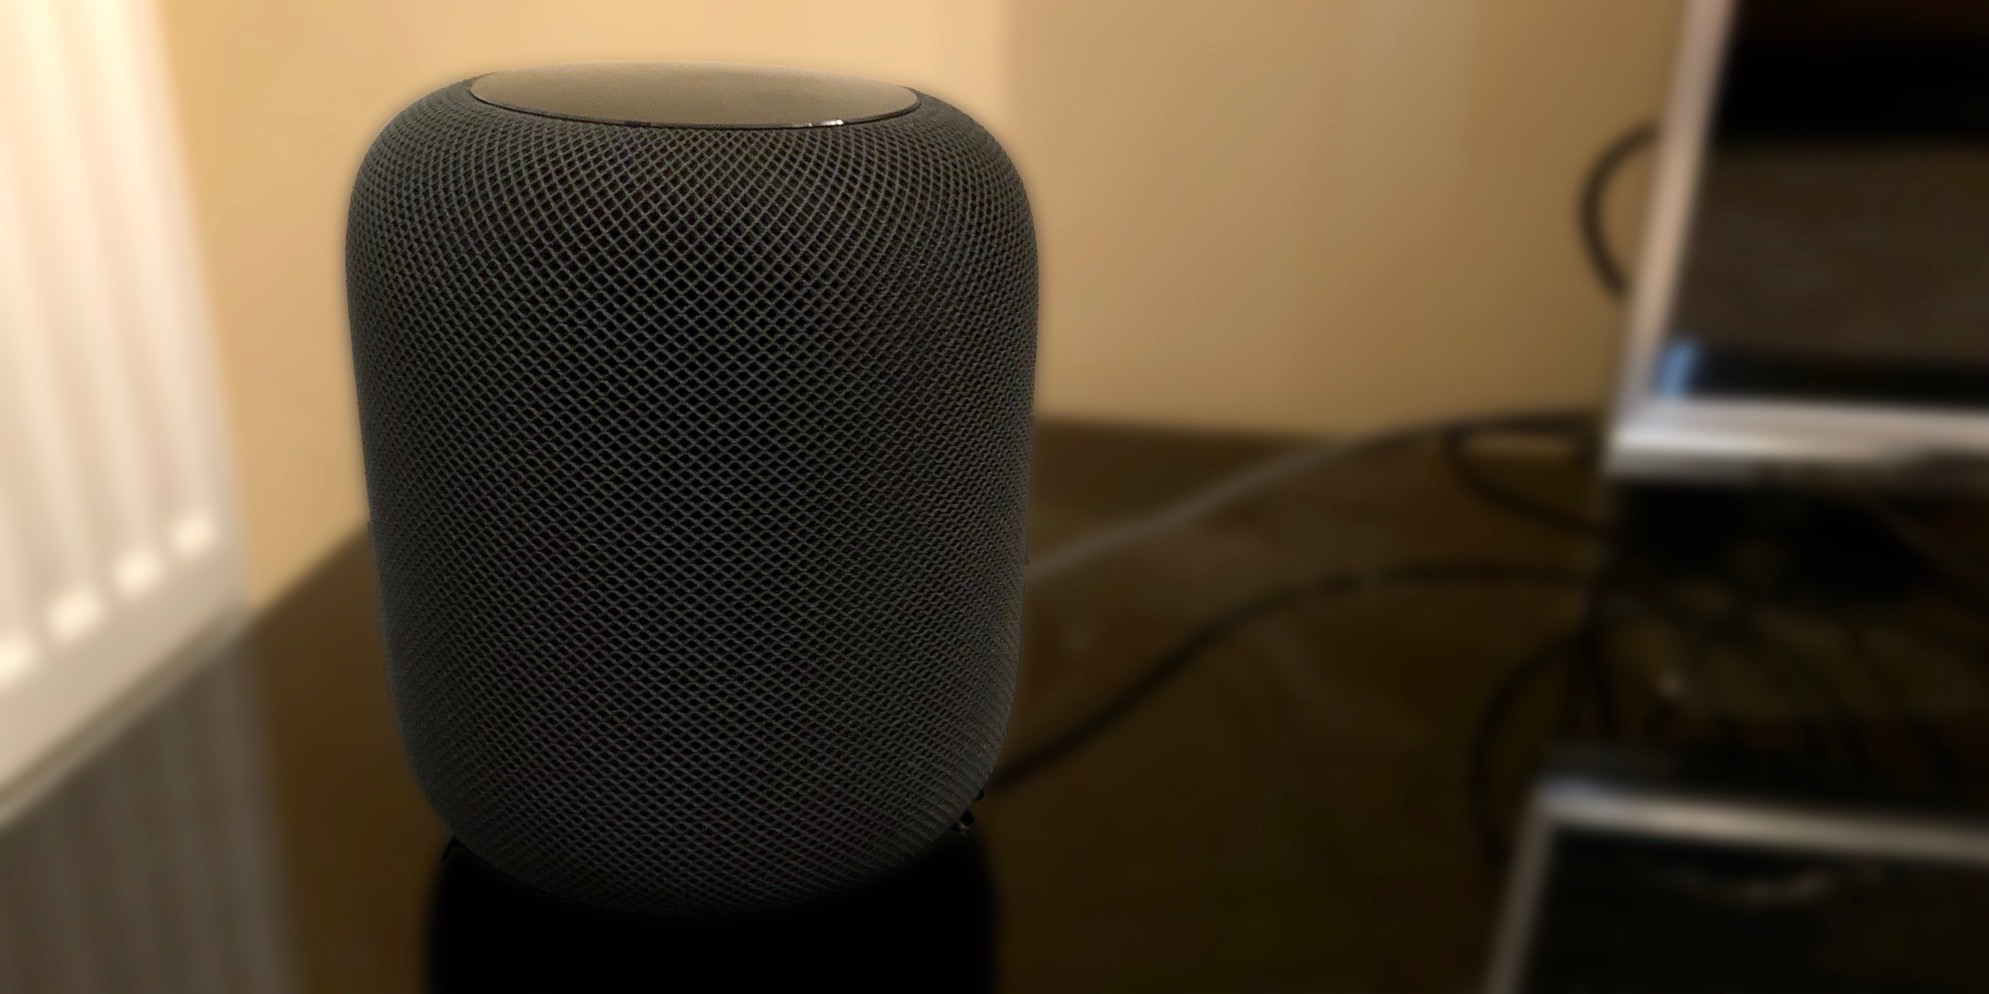 How to use HomePod with Apple TV … it mostly works but there are some drawbacks